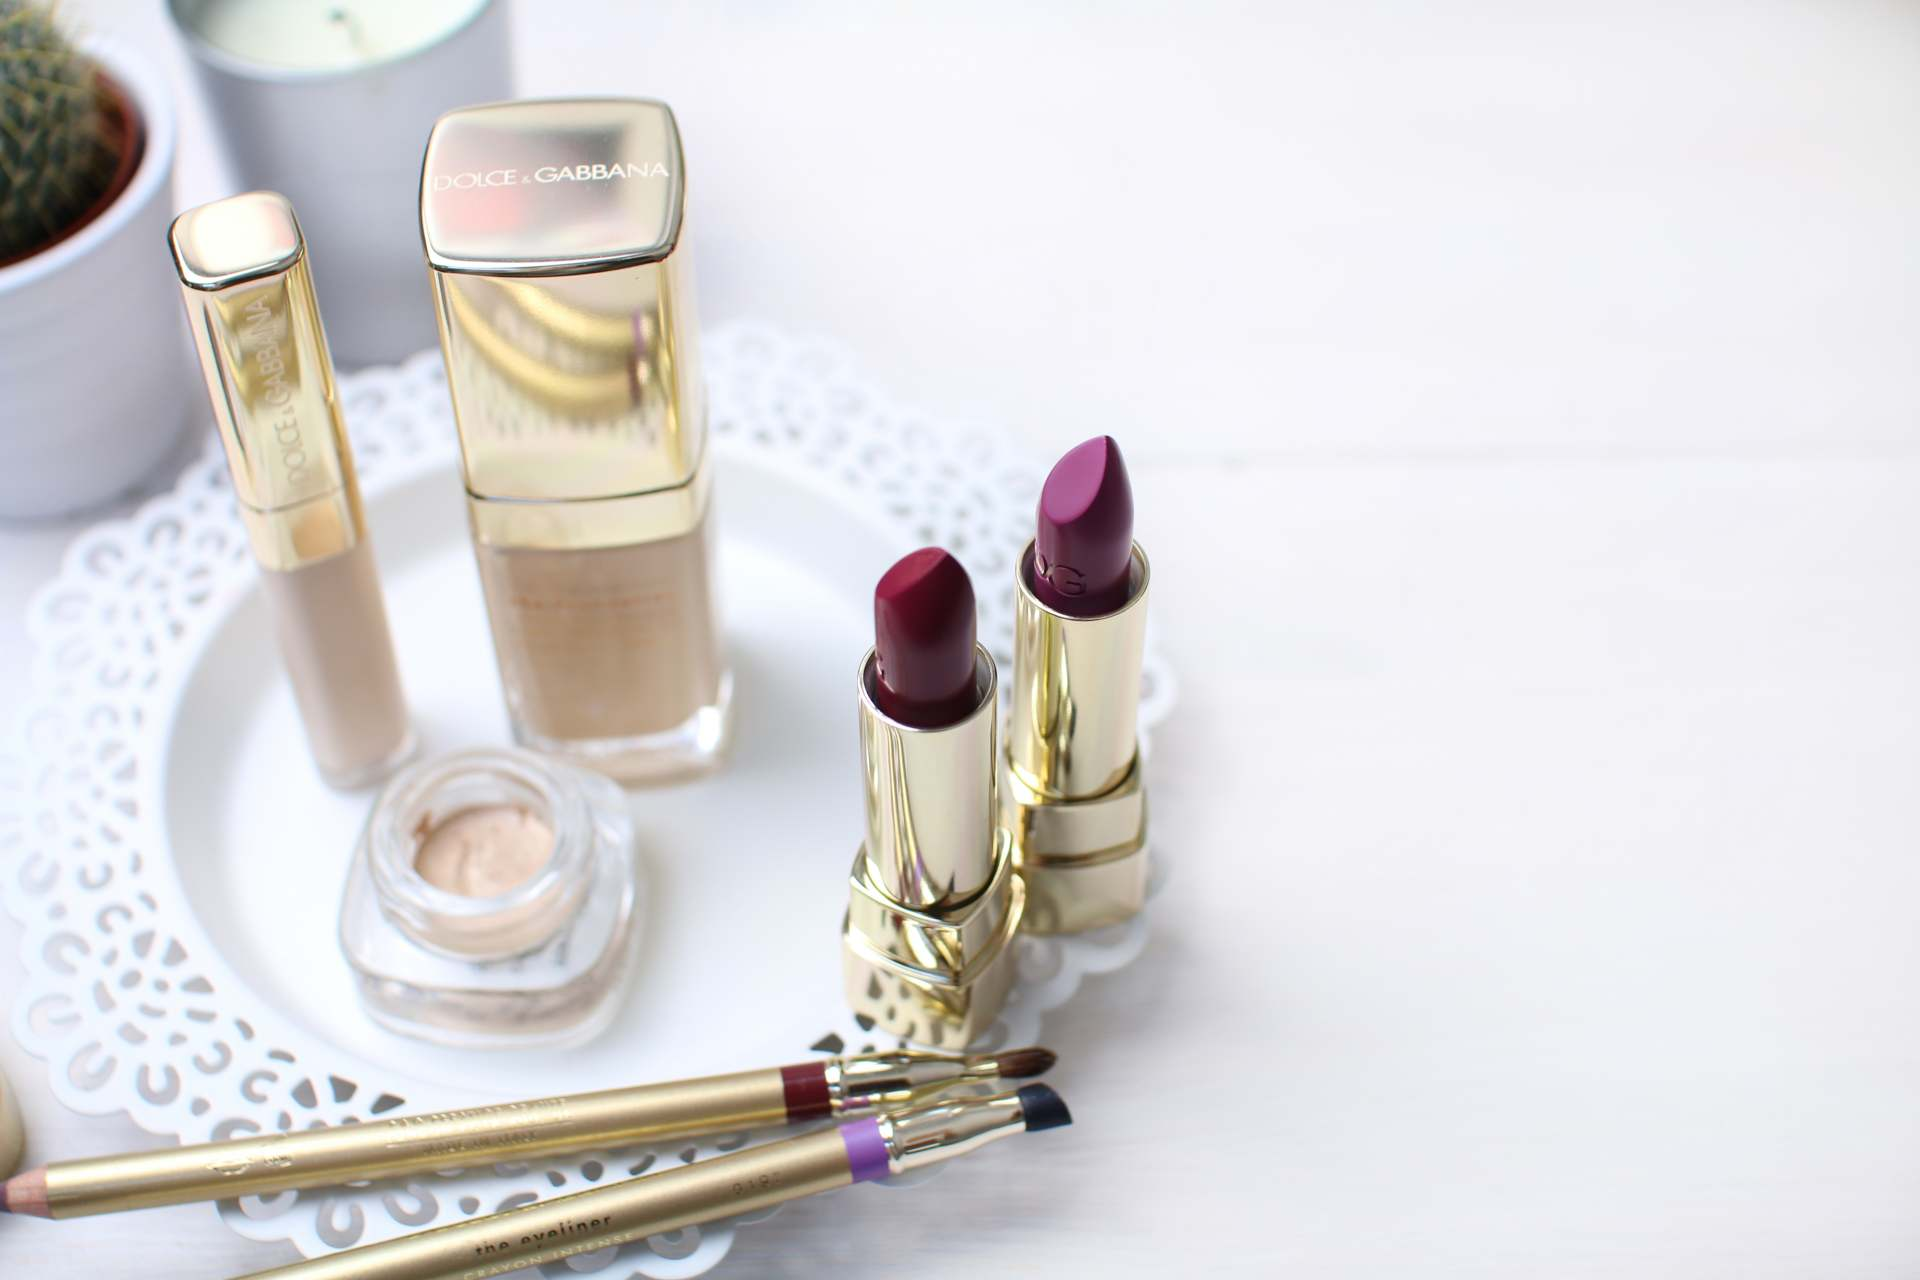 dolce and gabanna beauty inthefrow